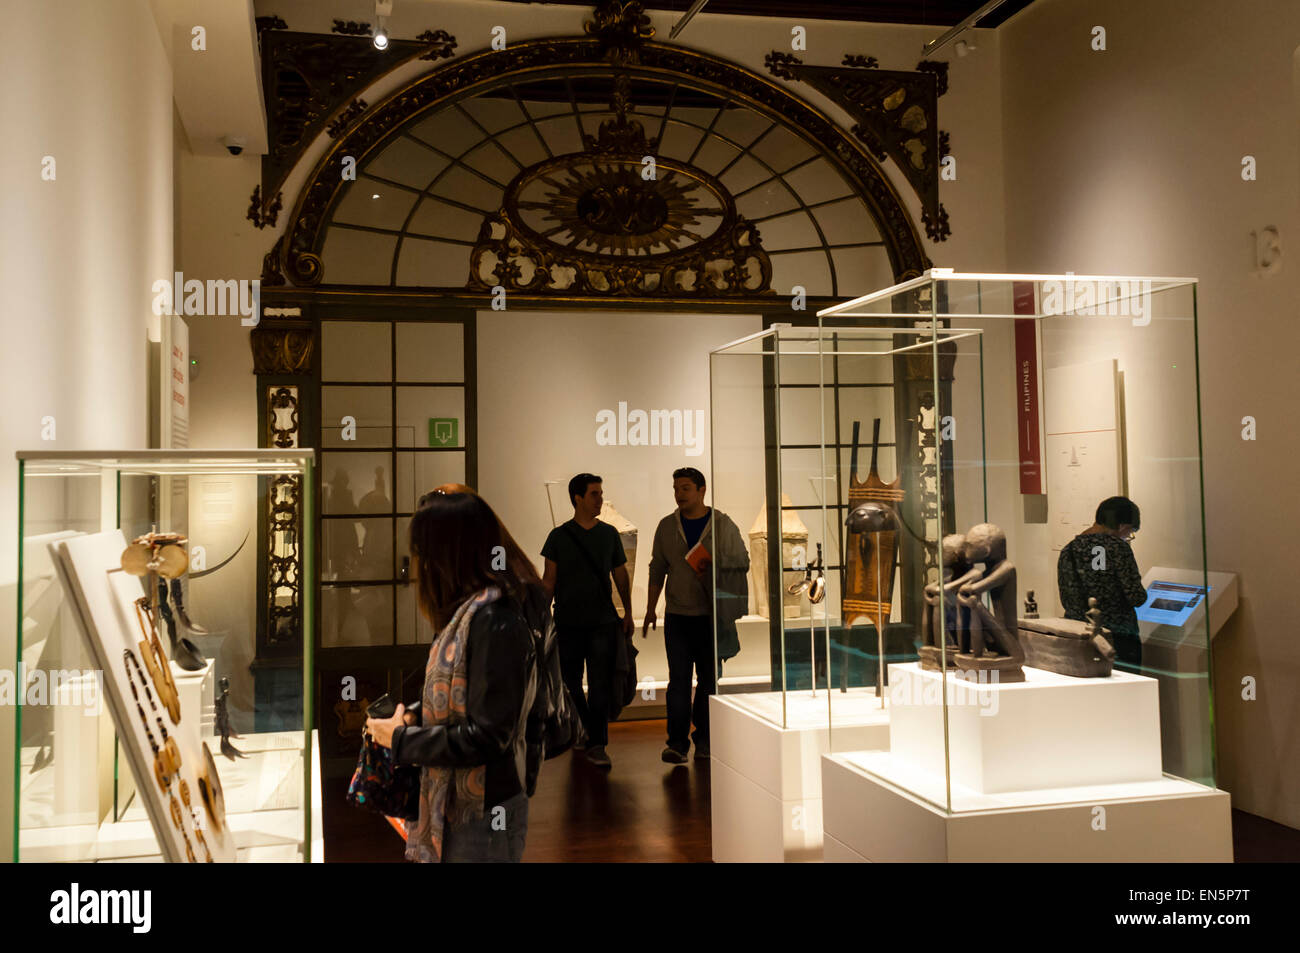 Museu de cultures del món, Barcelone, Catalogne Photo Stock